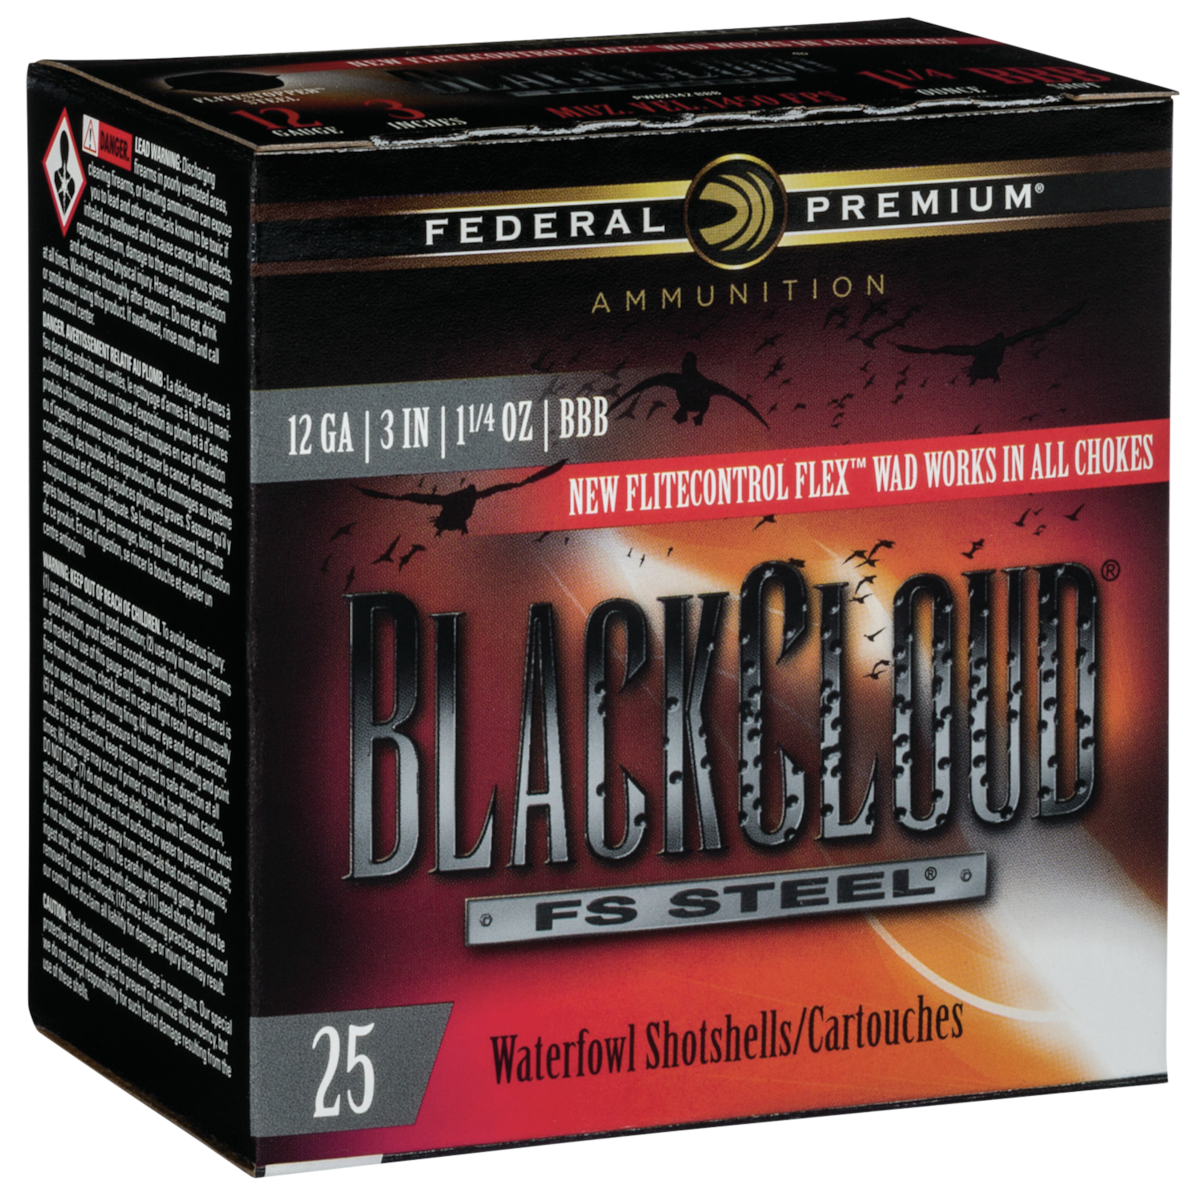 FEDERAL BLACK CLOUD